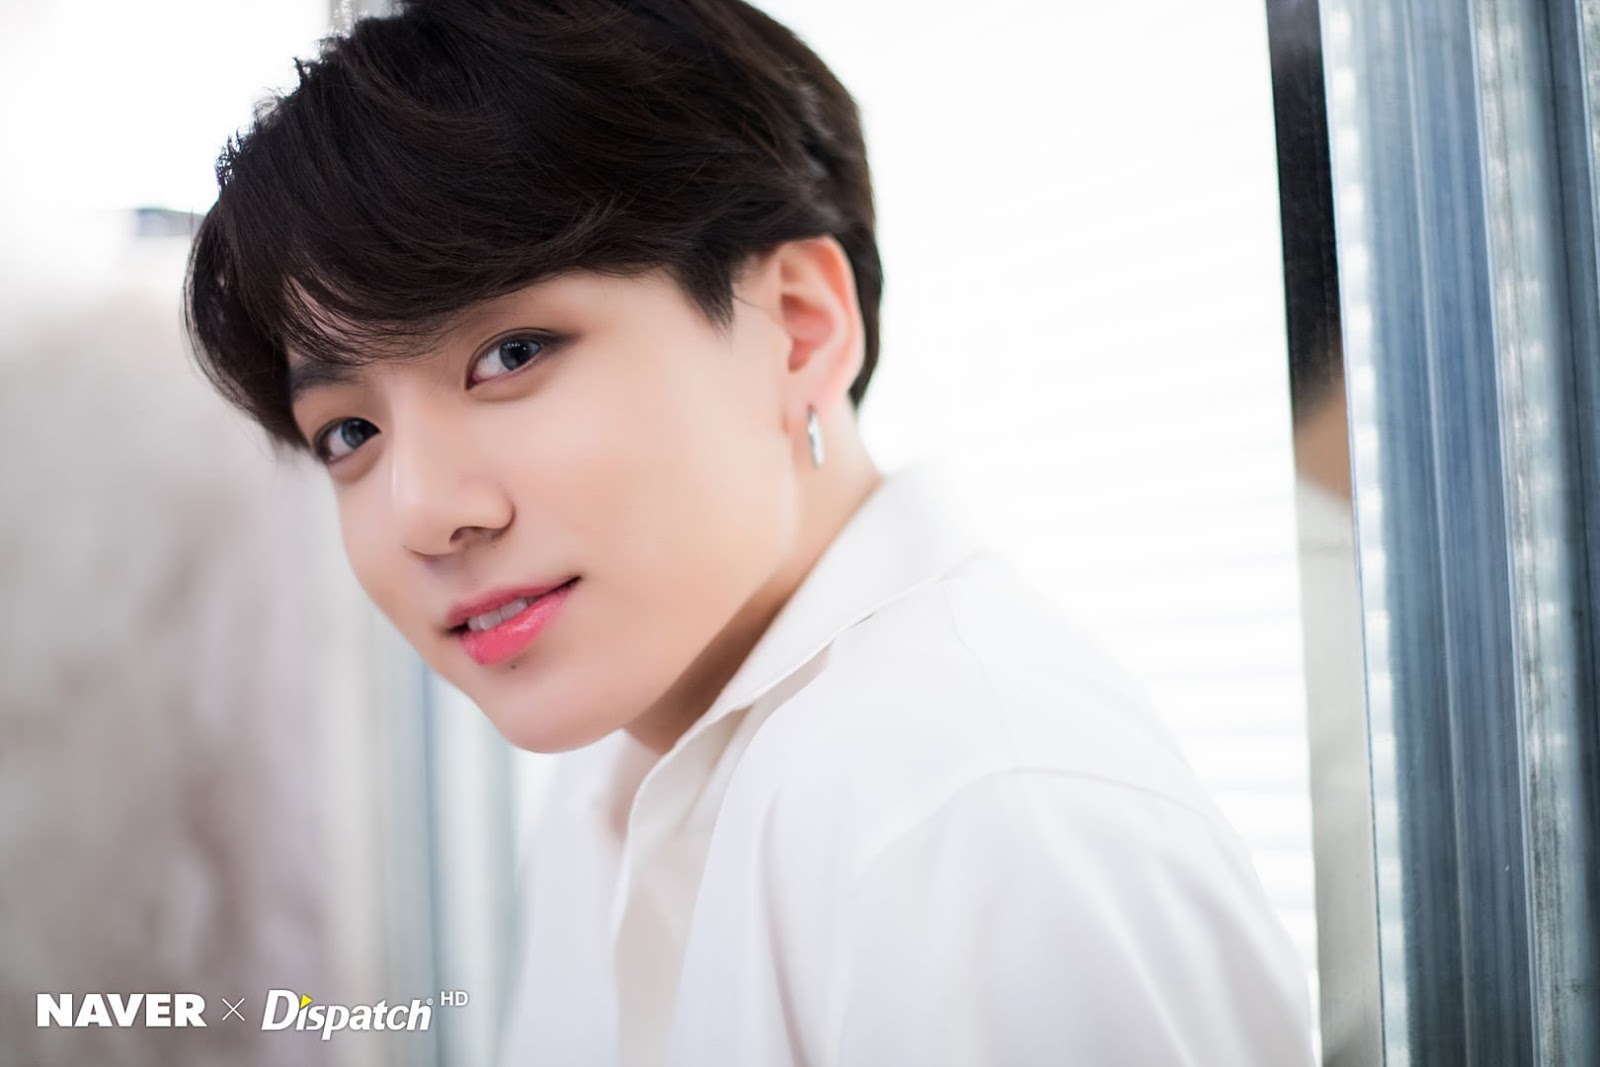 Defined as a Perpetrator, Yongsan Police Will Ask Jungkook to the Office